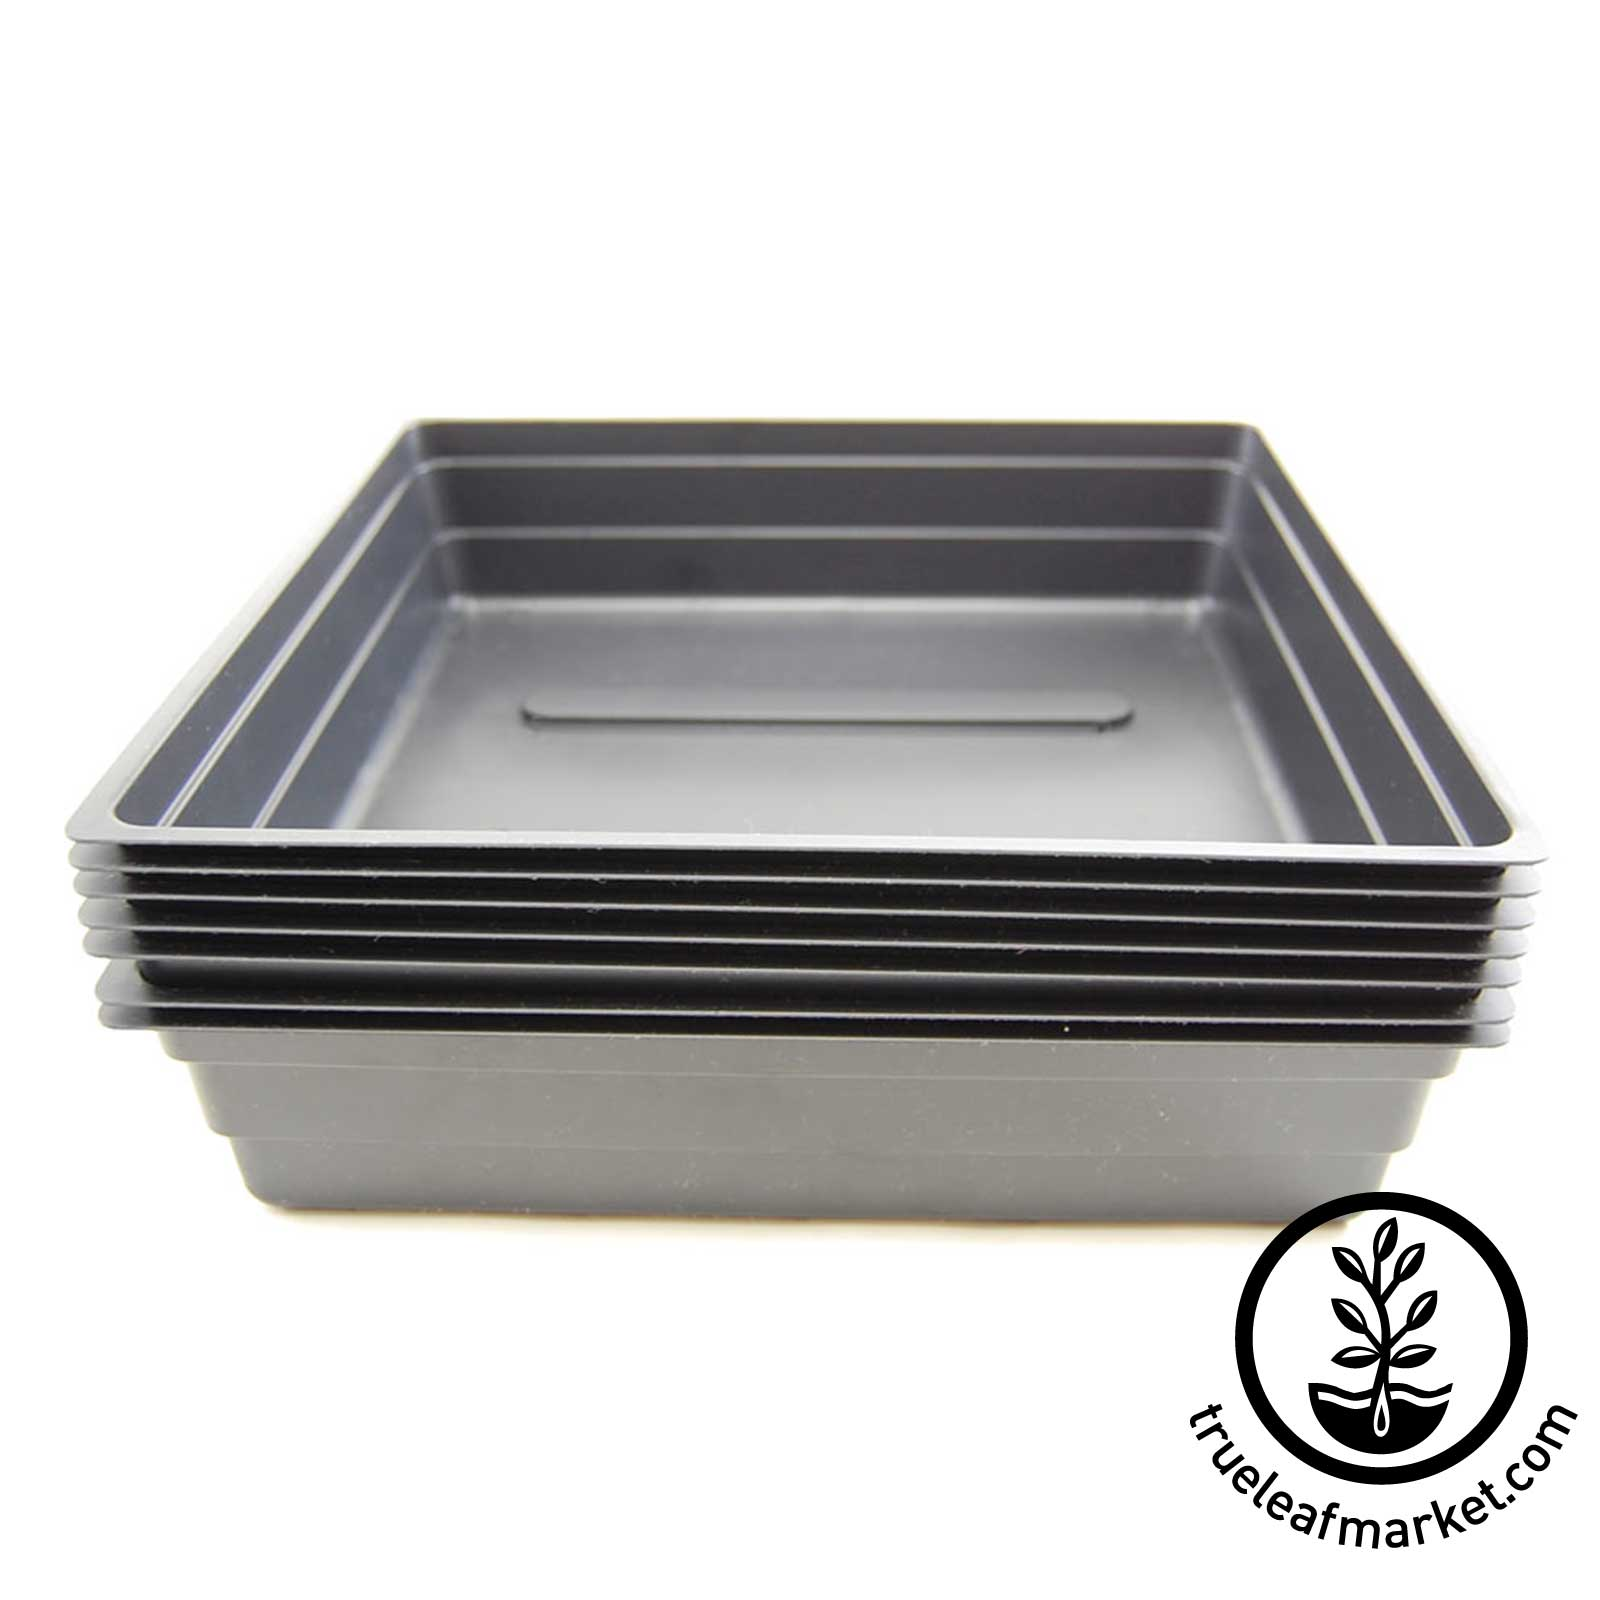 10x10 Drip Trays - No Drain Holes